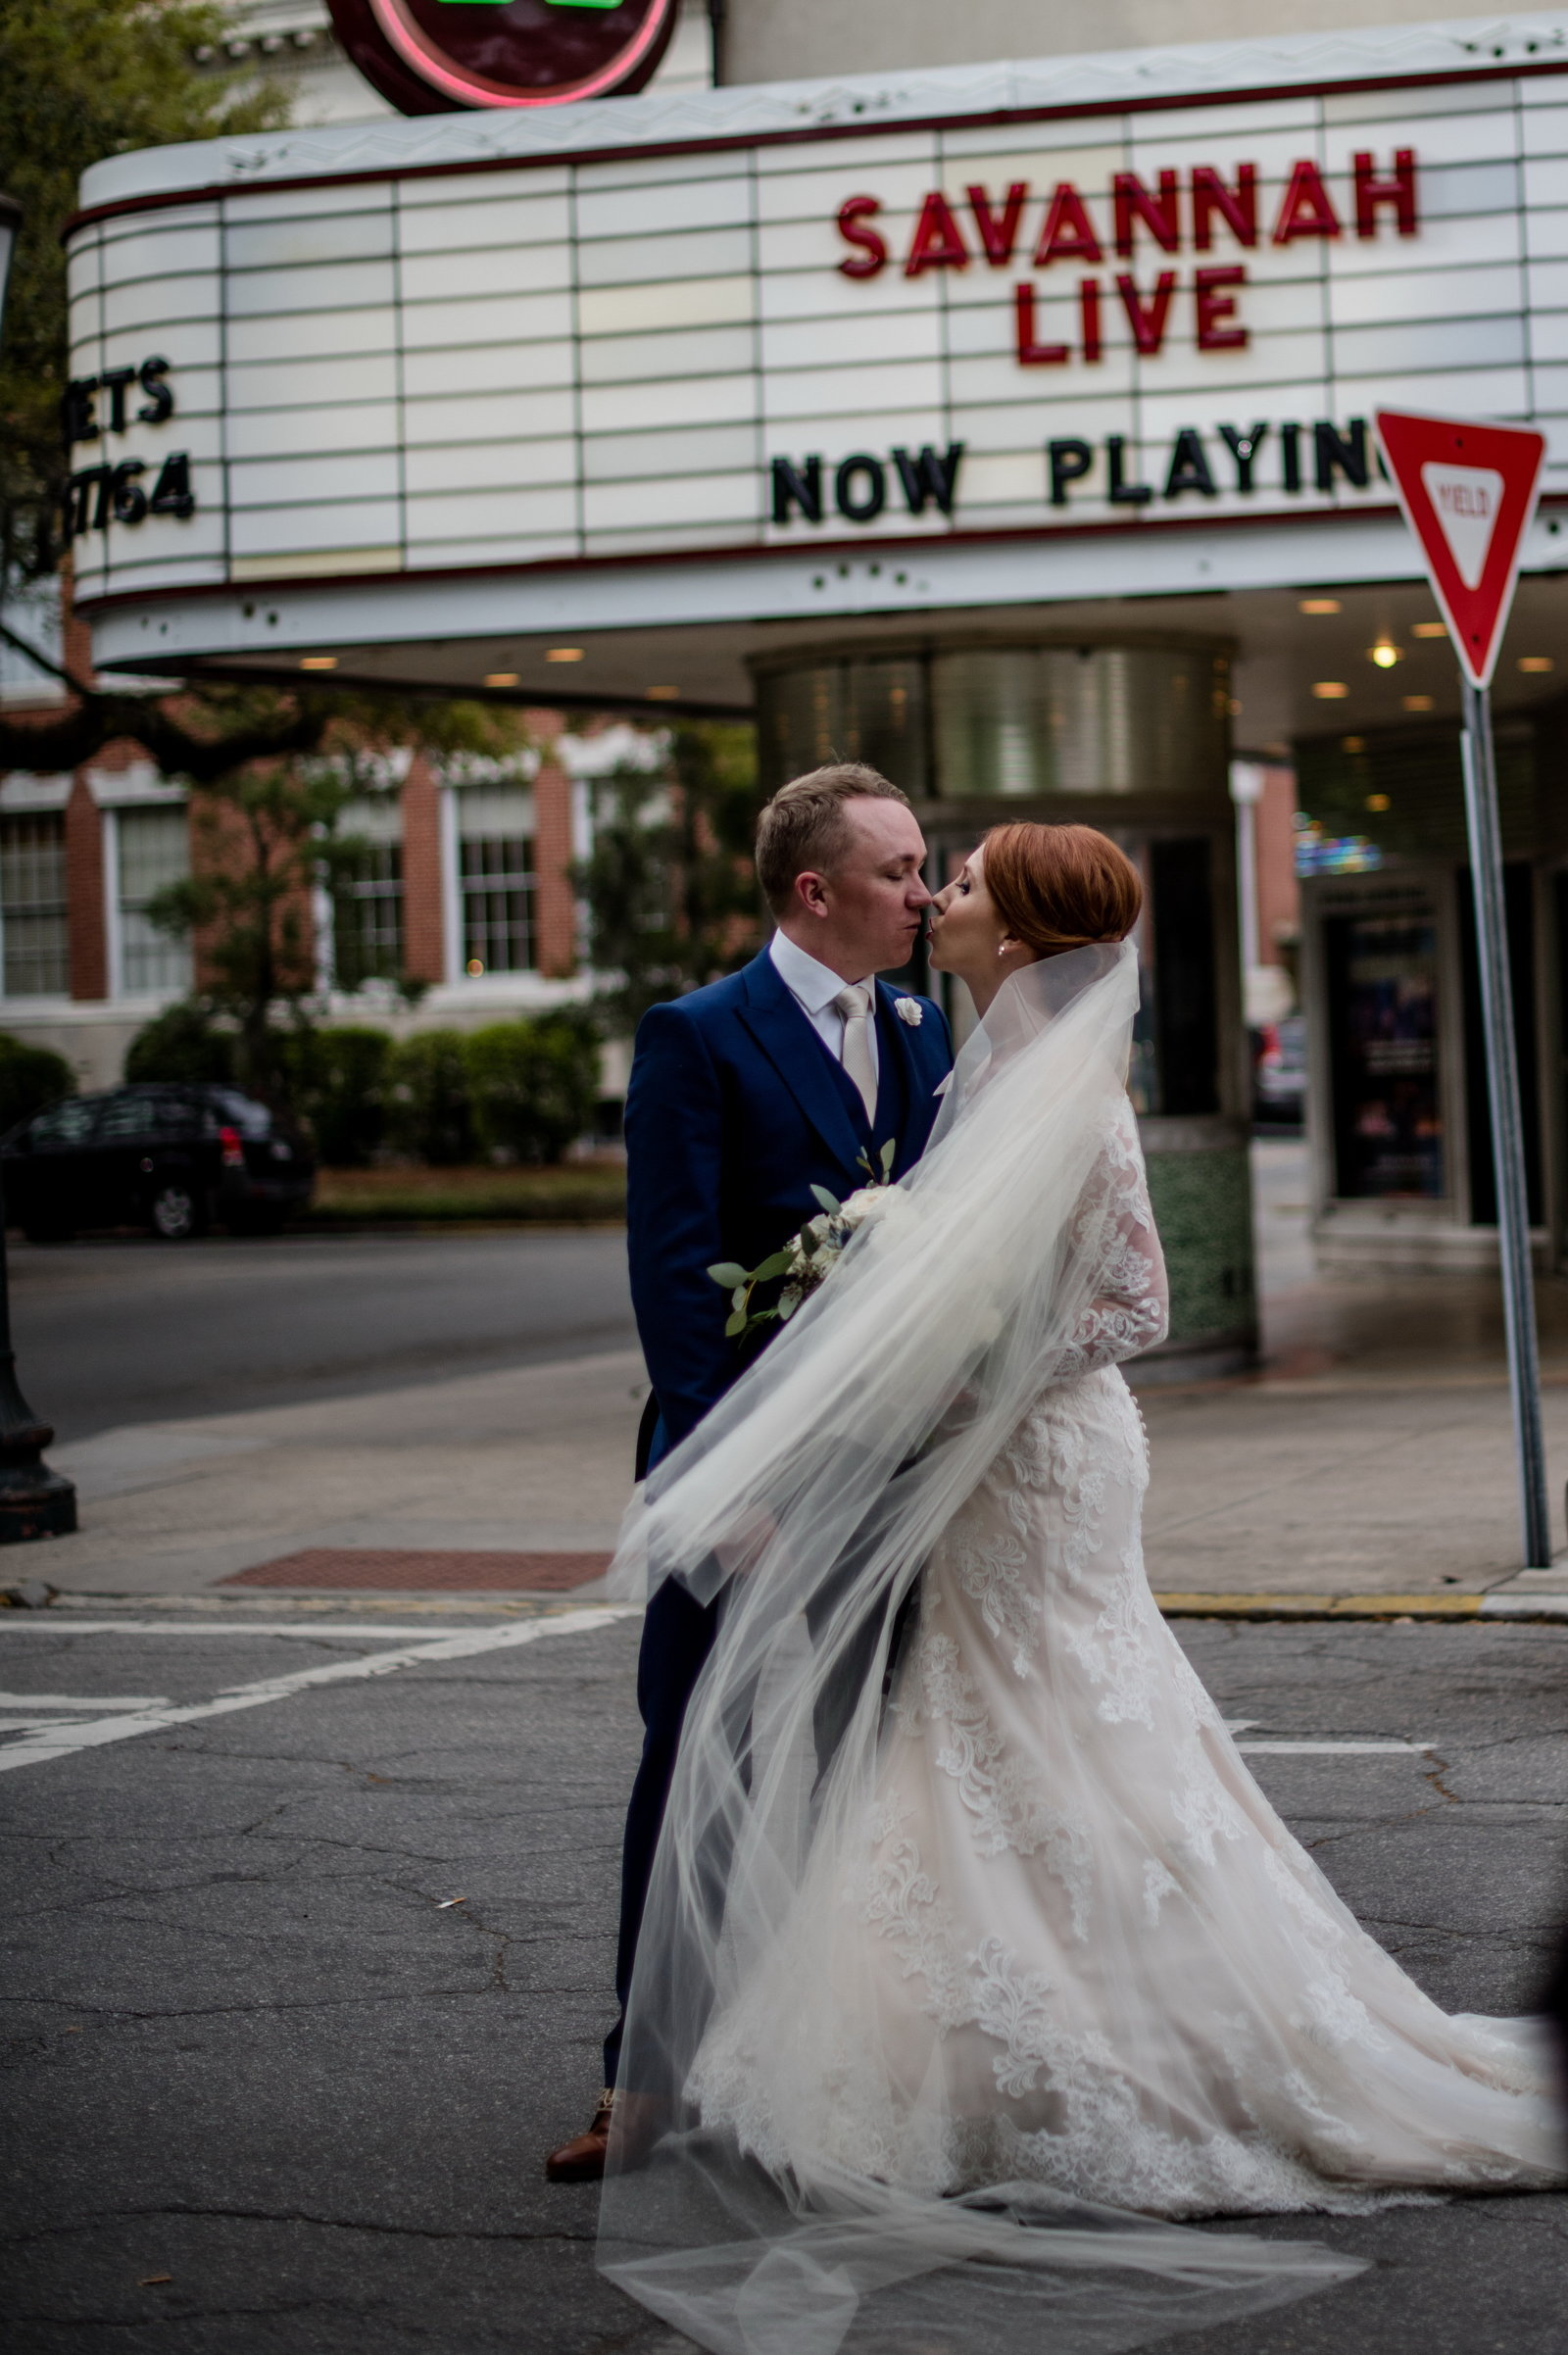 Savannah GA Wedding Photographer, Bobbi Brinkman Photography